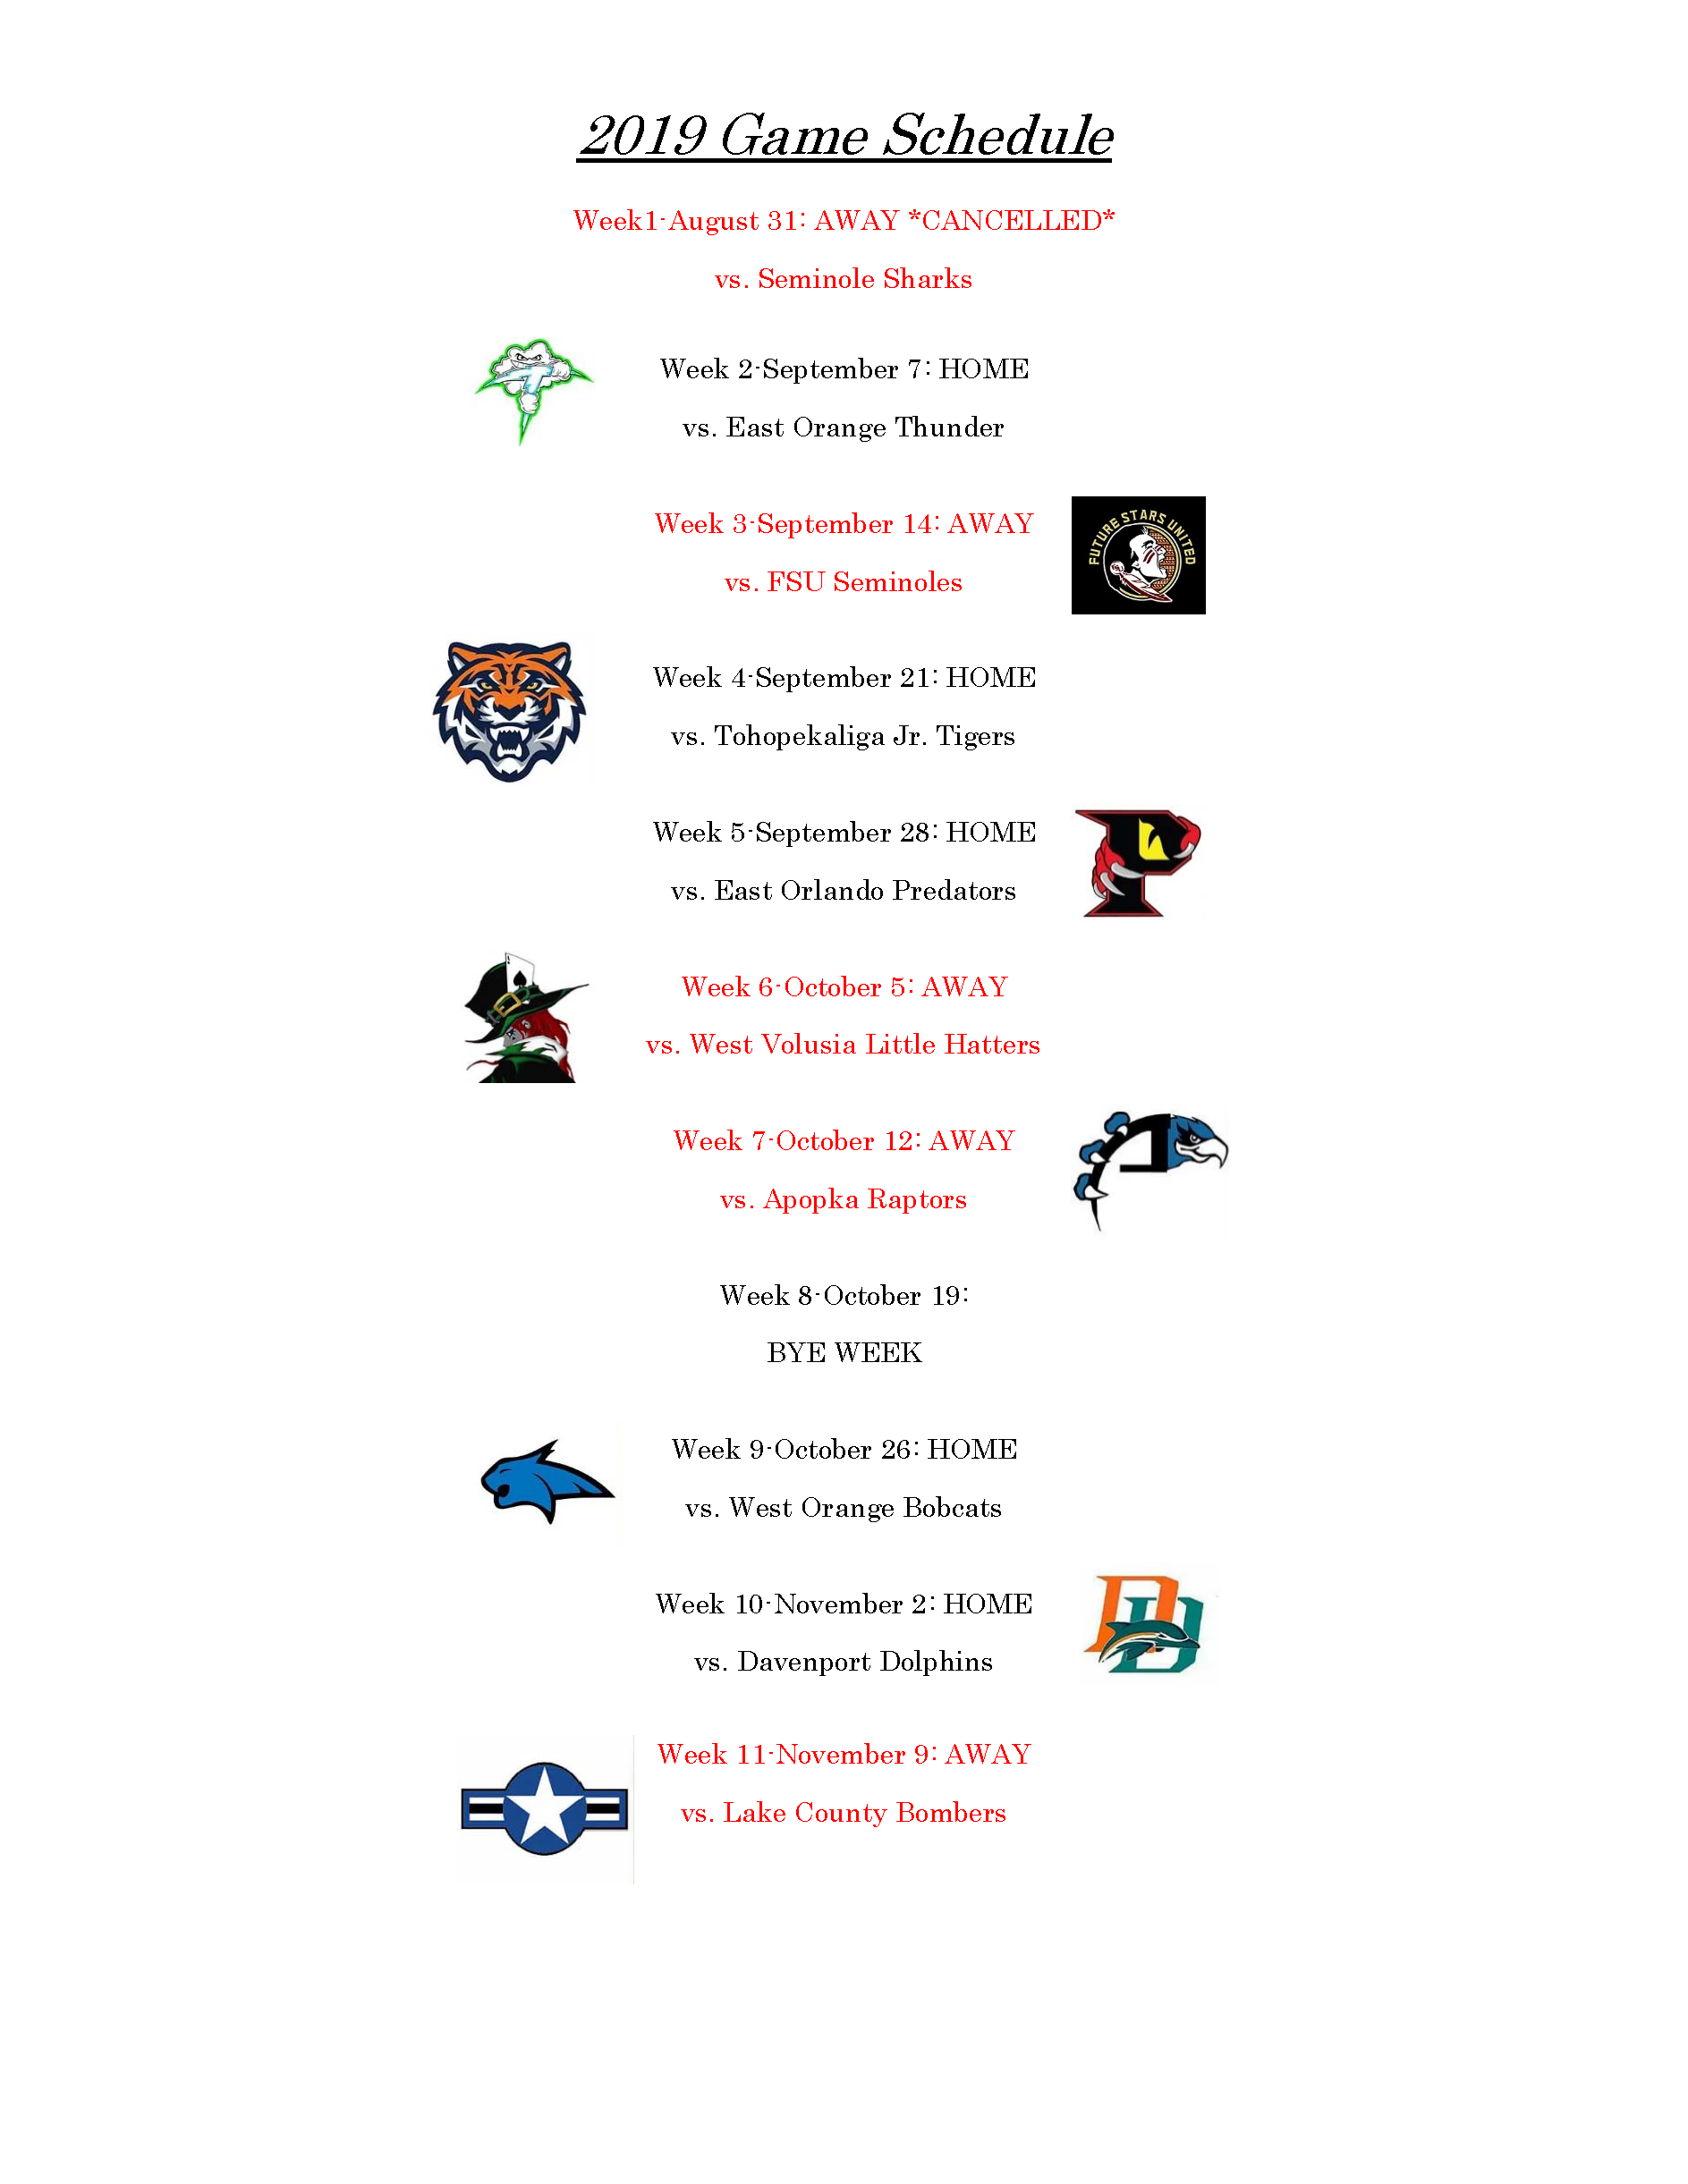 Falcons Updated Game Schedule 09.03.19